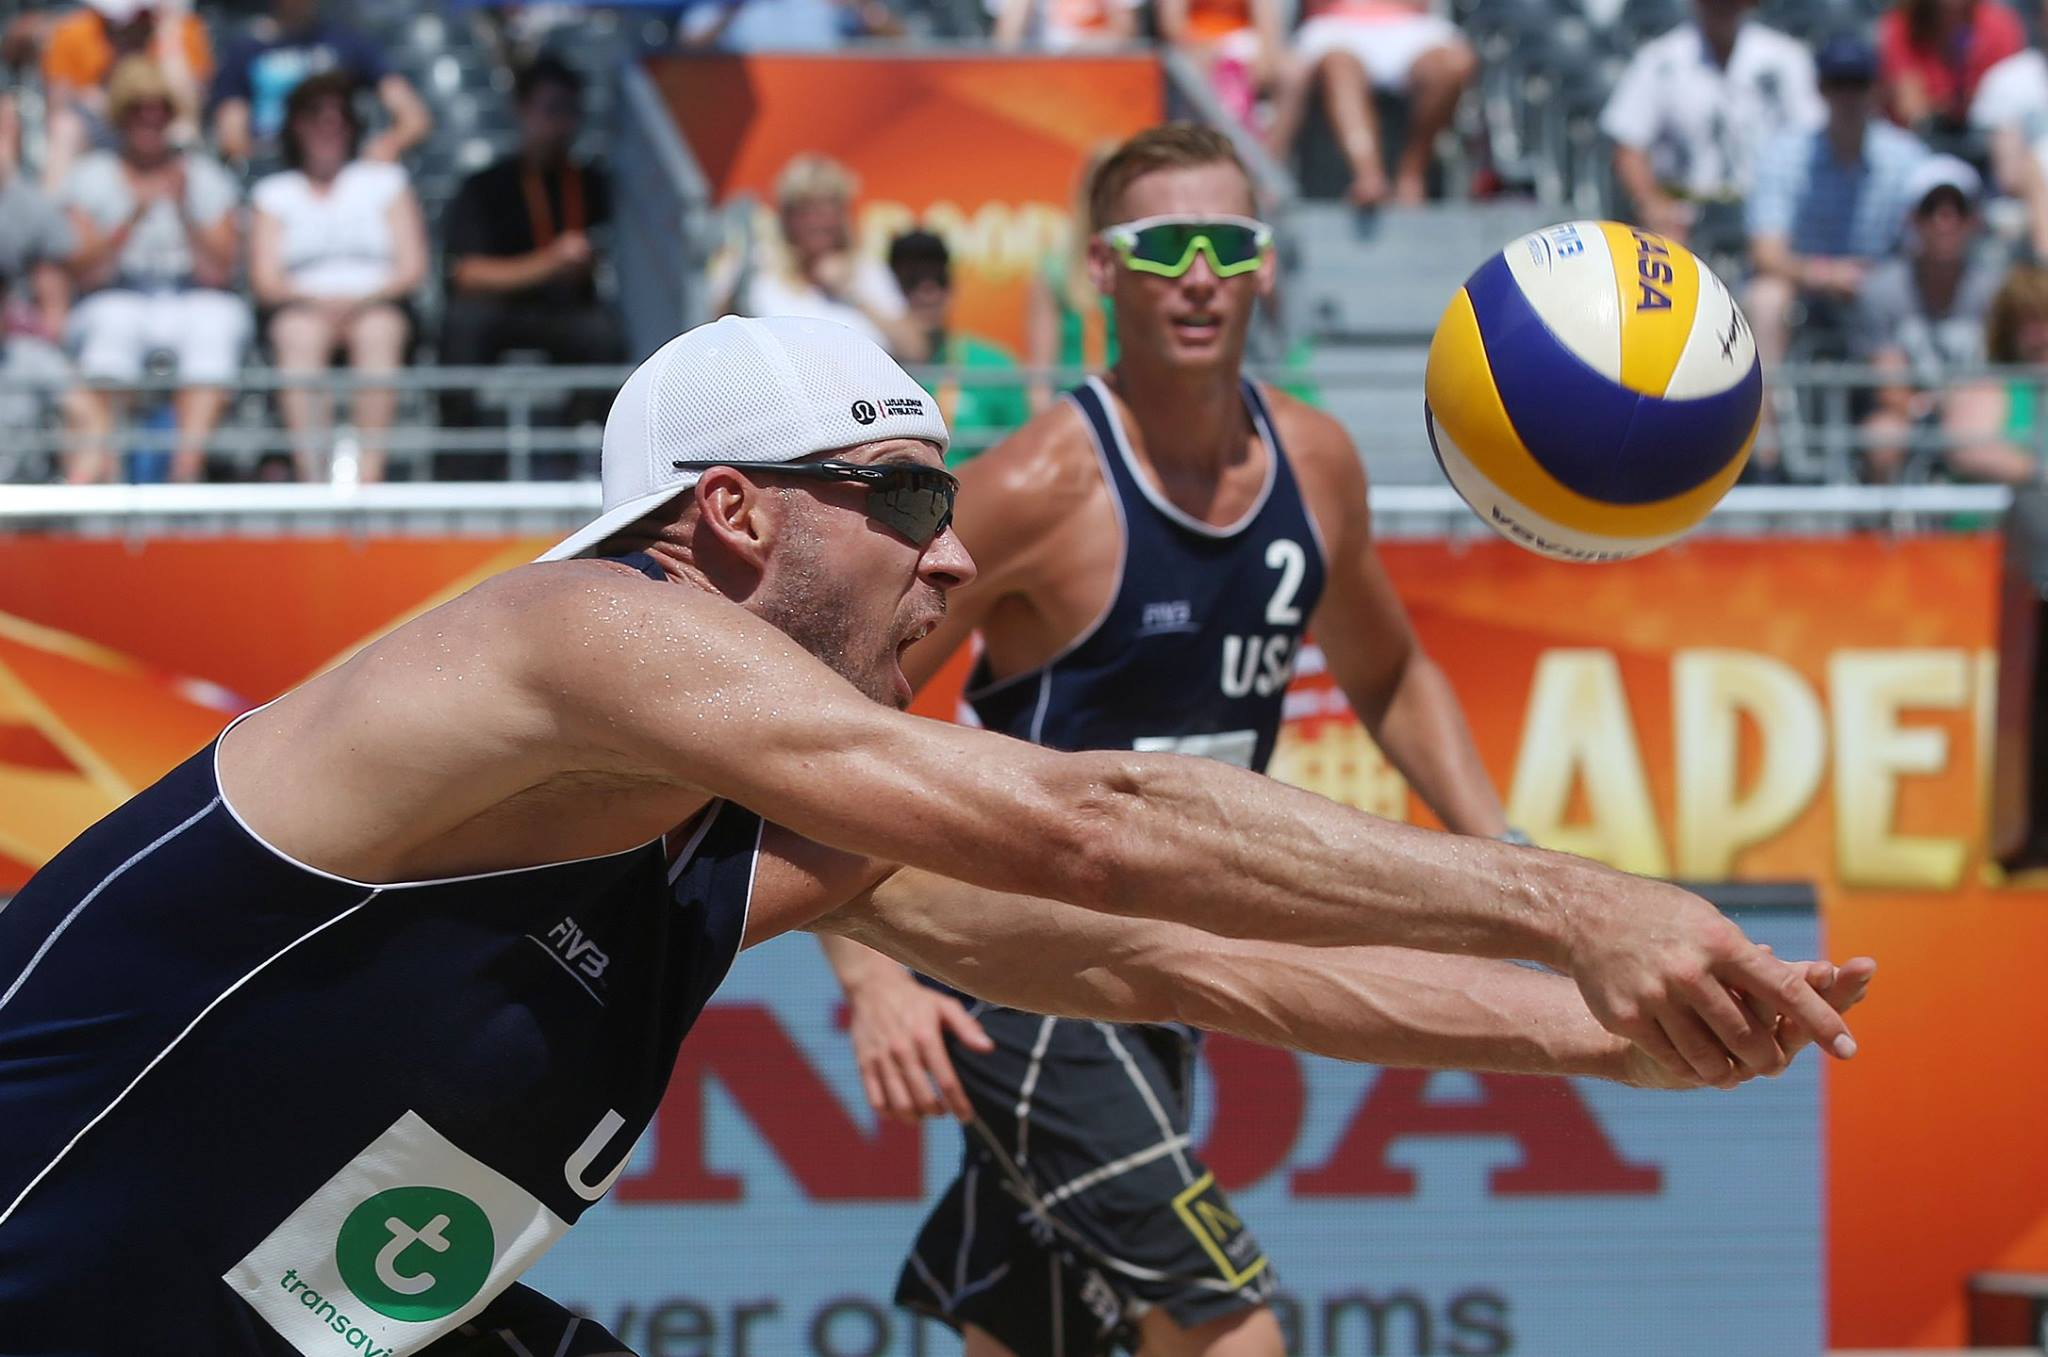 WK Beachvolleybal - Daily Cappuccino - Lifestyle Blog